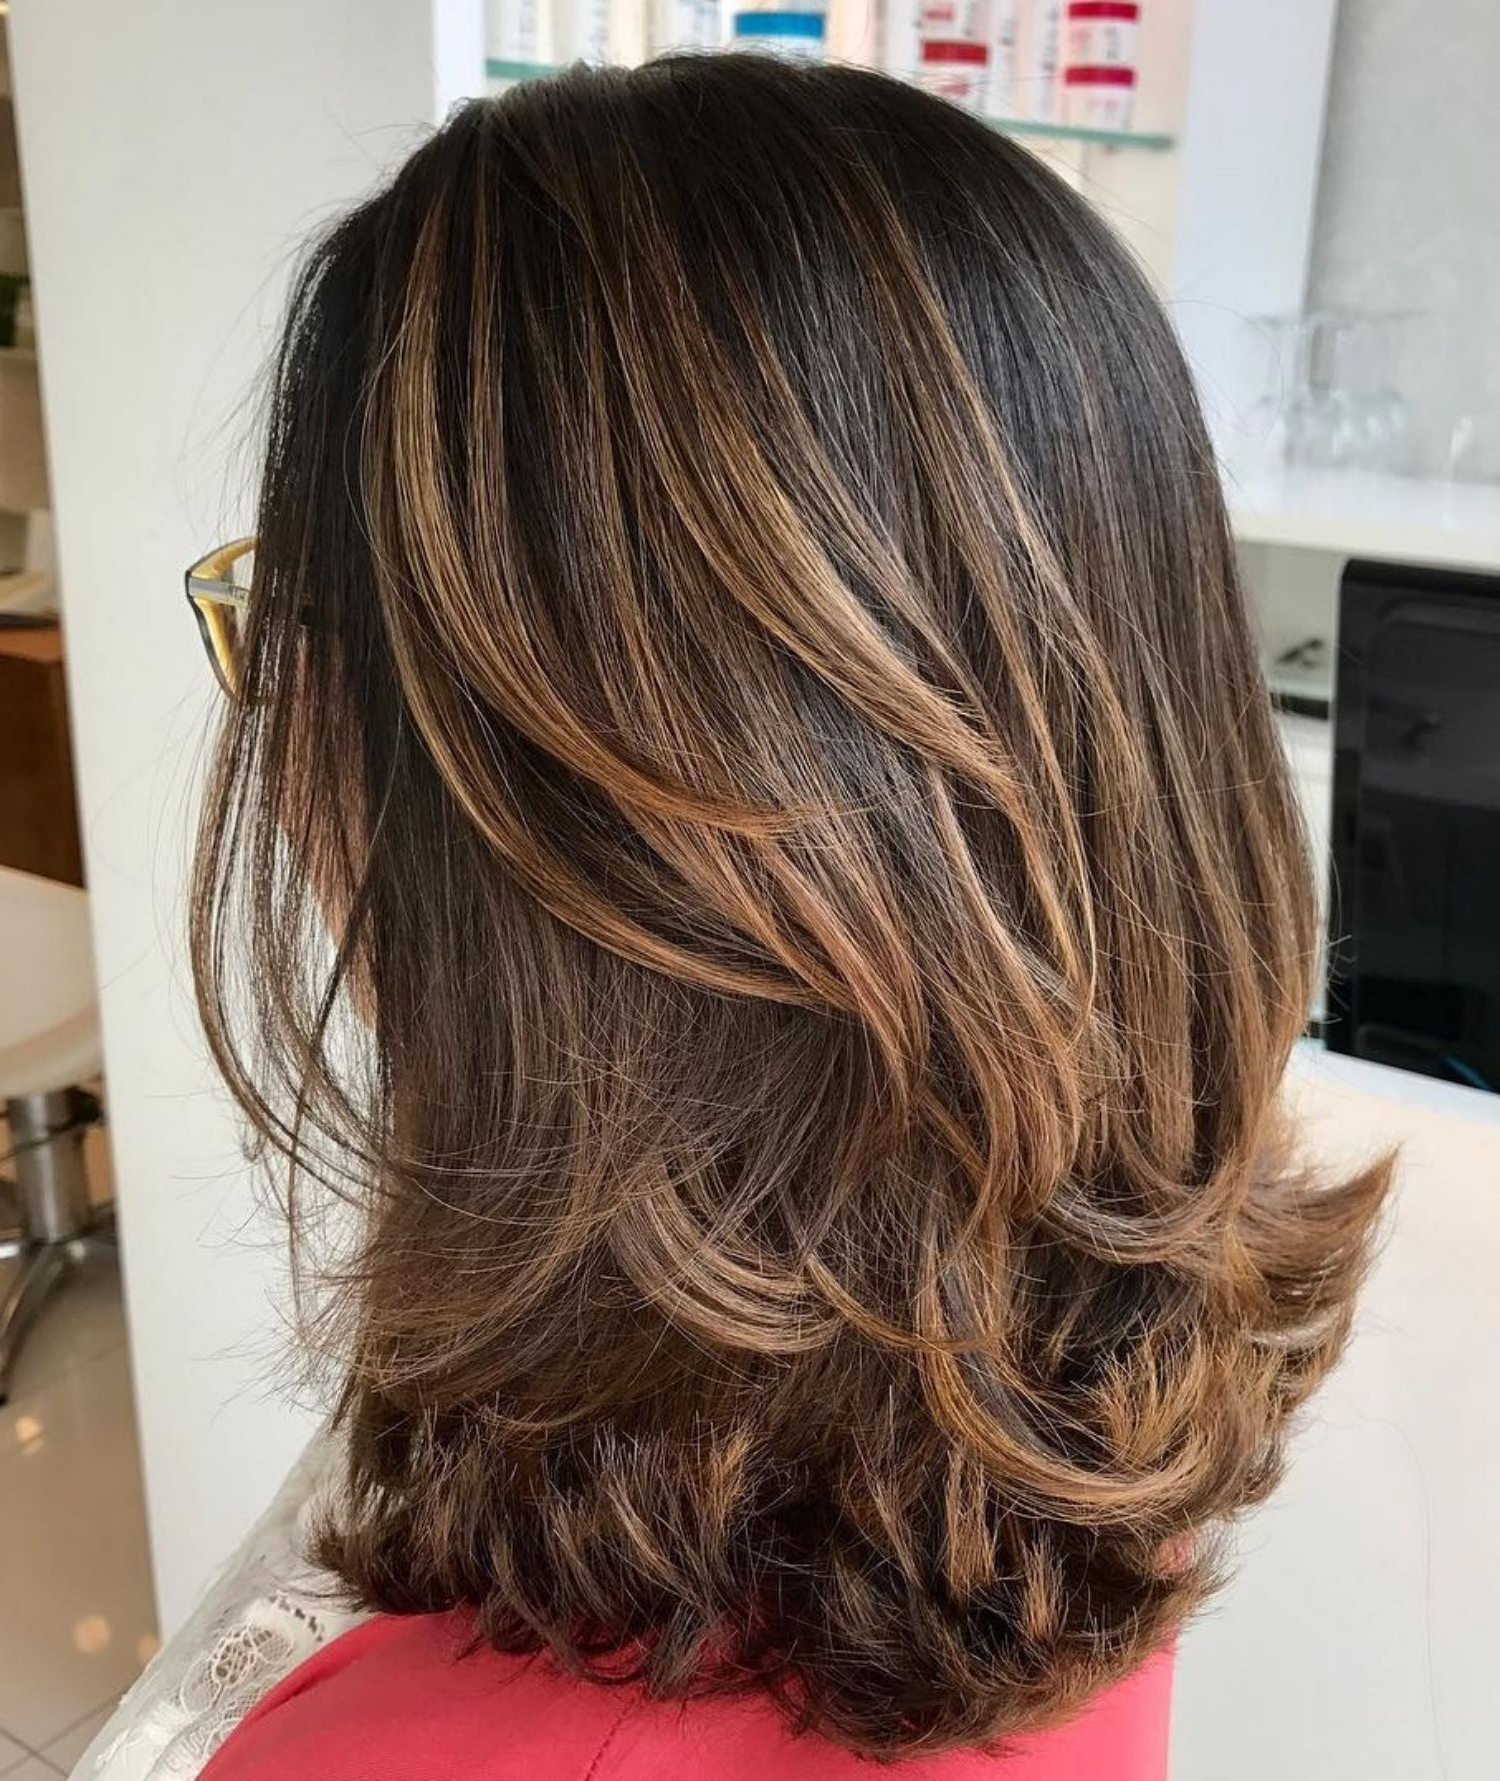 10 Brightest Medium Length Layered Hairstyles For A Memorable New With 2017 Medium Haircuts With Fiery Ombre Layers (View 1 of 20)